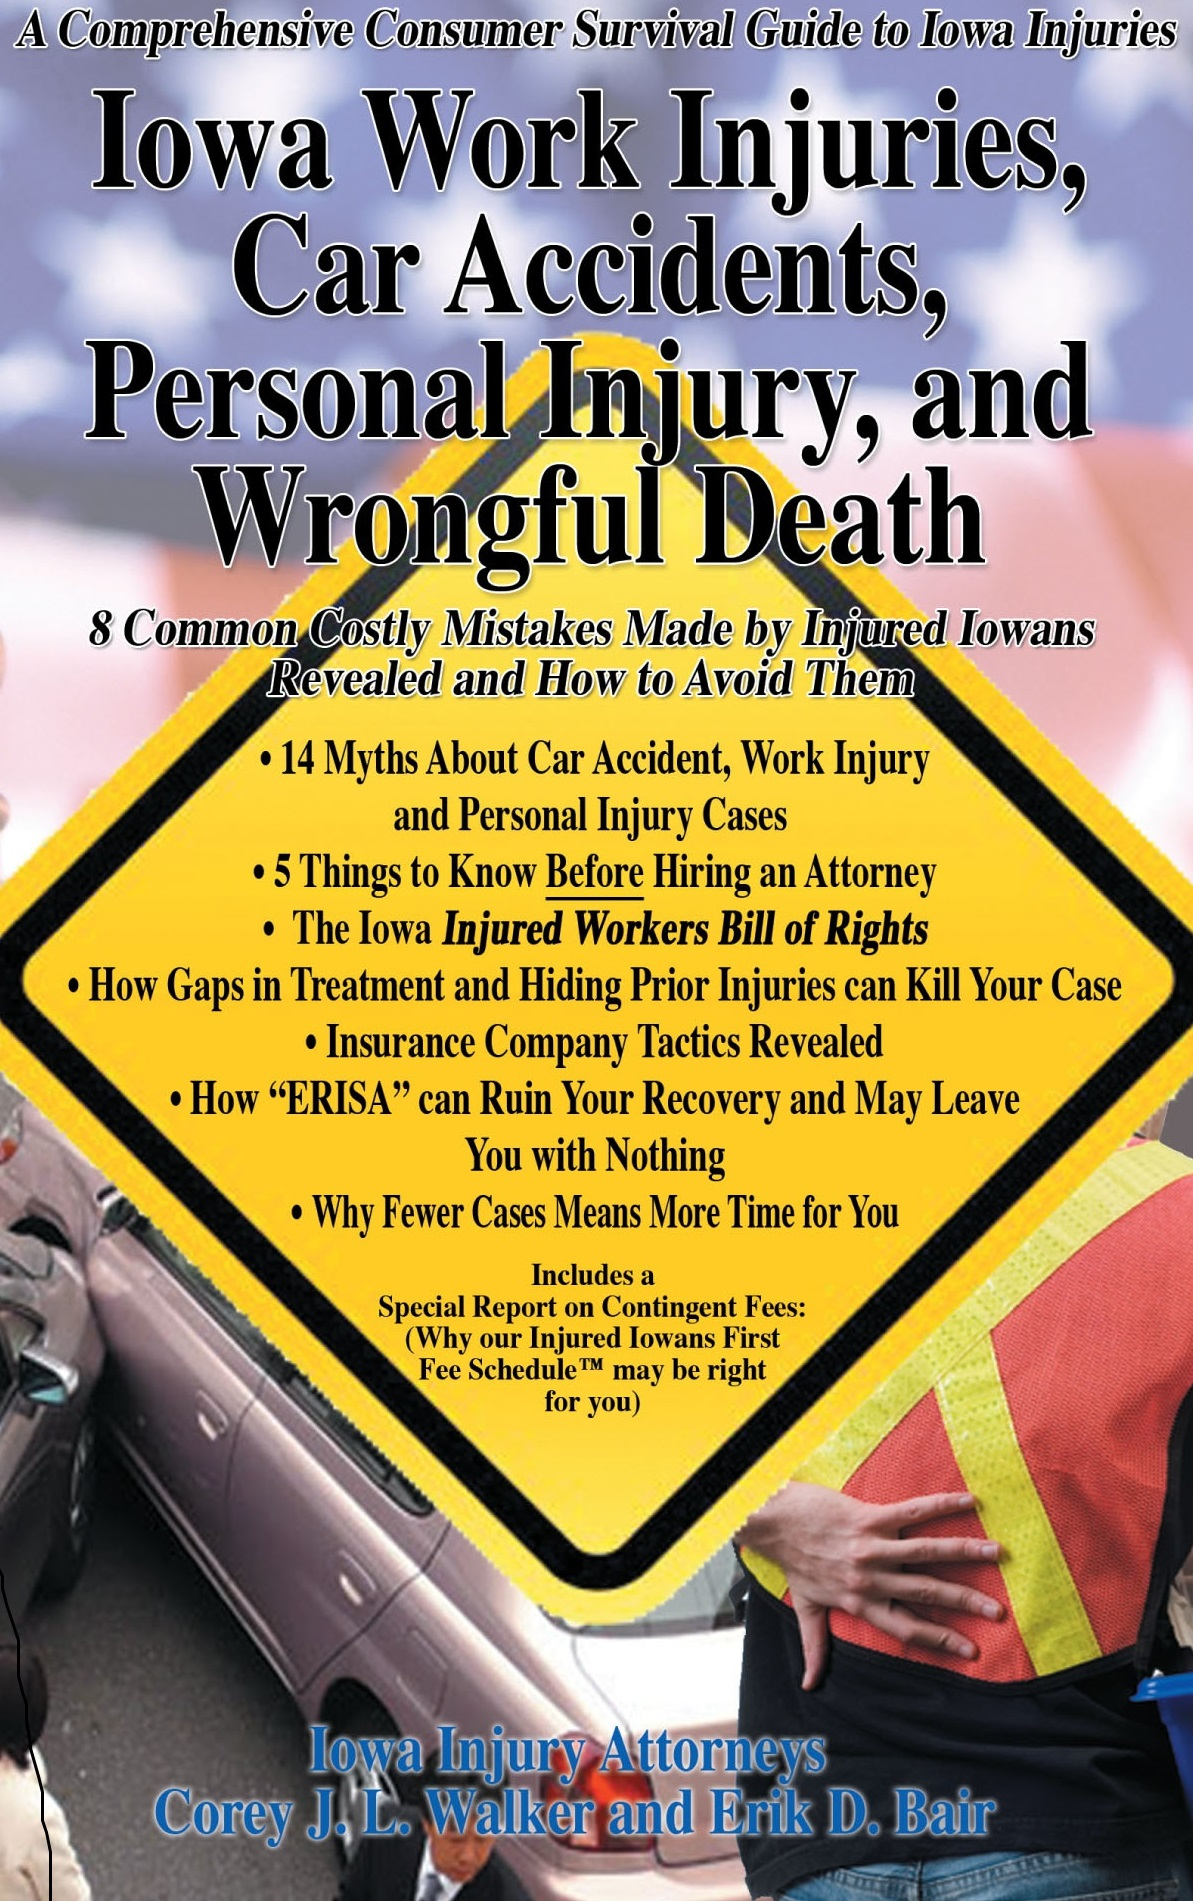 Iowa work injuries, car accidents, personal injury, and wrongful death book written by iowa injury law firm